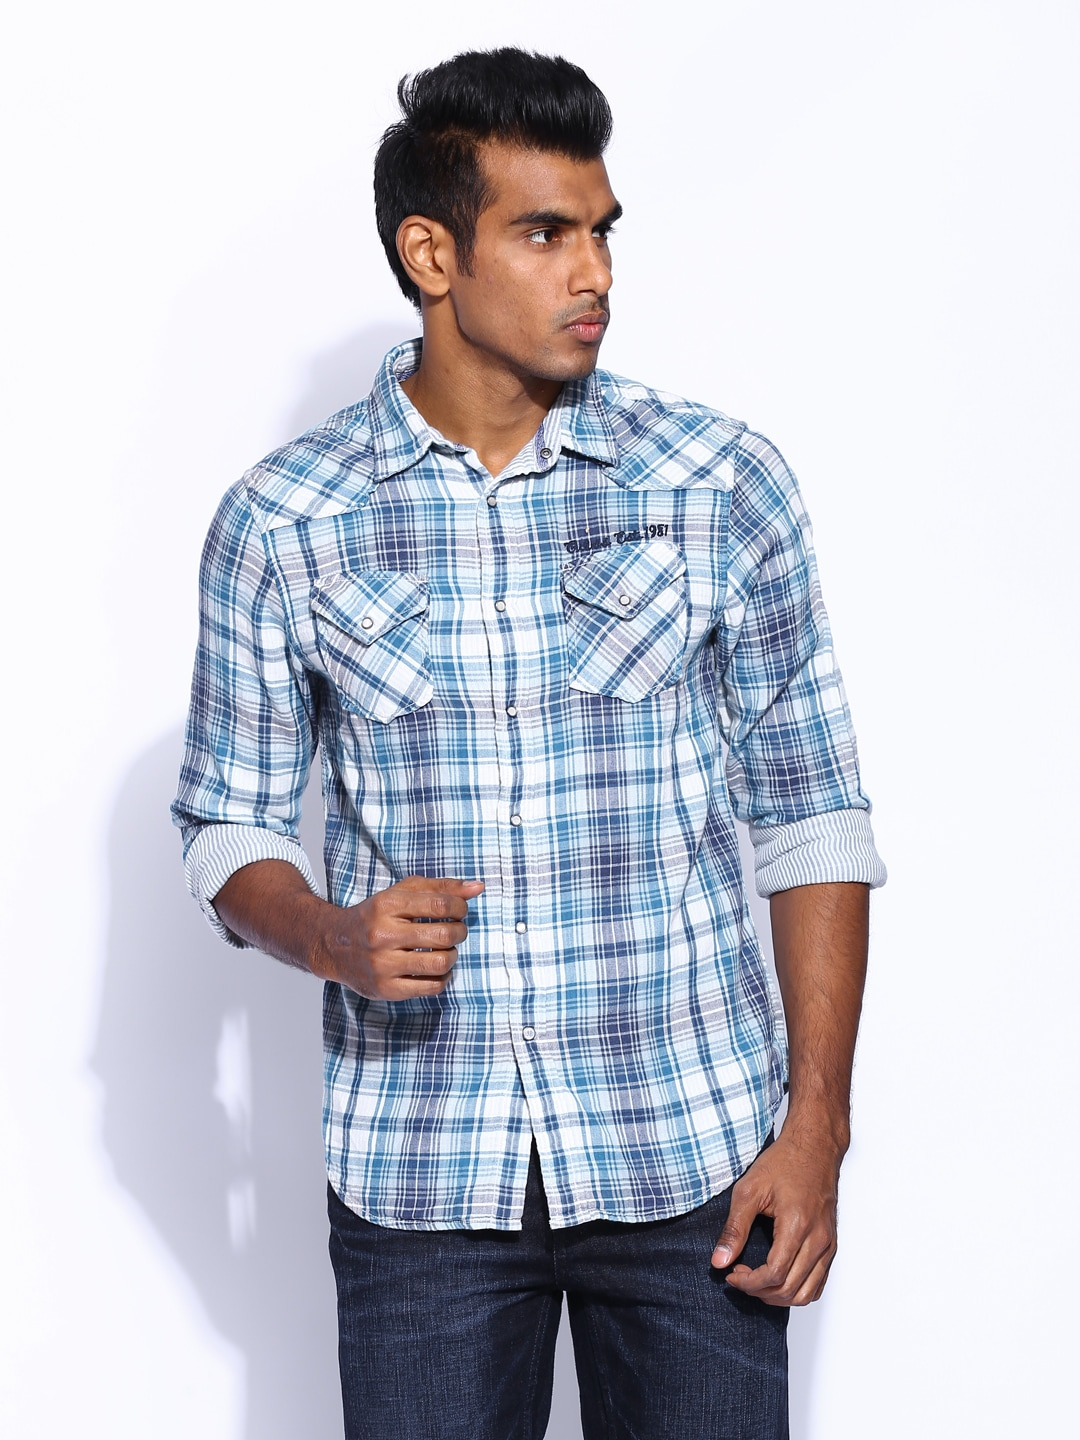 f943e6413f36 Guess m21216w25j0 Men Blue And White Checked Shirt - Best Price ...